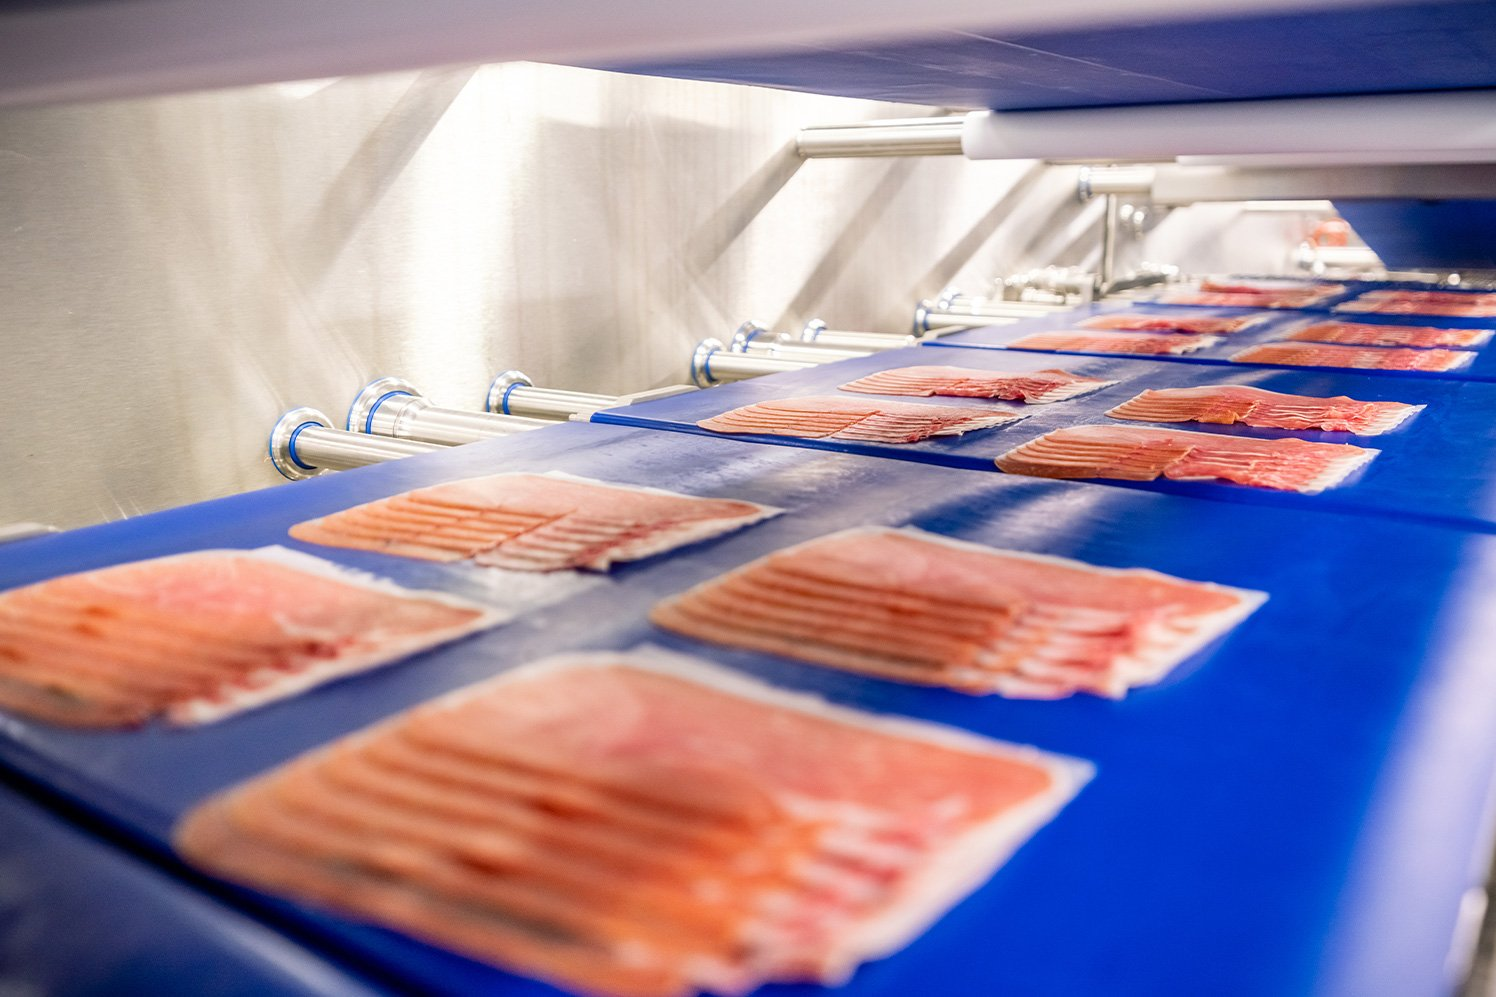 Sliced cuts: production in thermo-formed trays